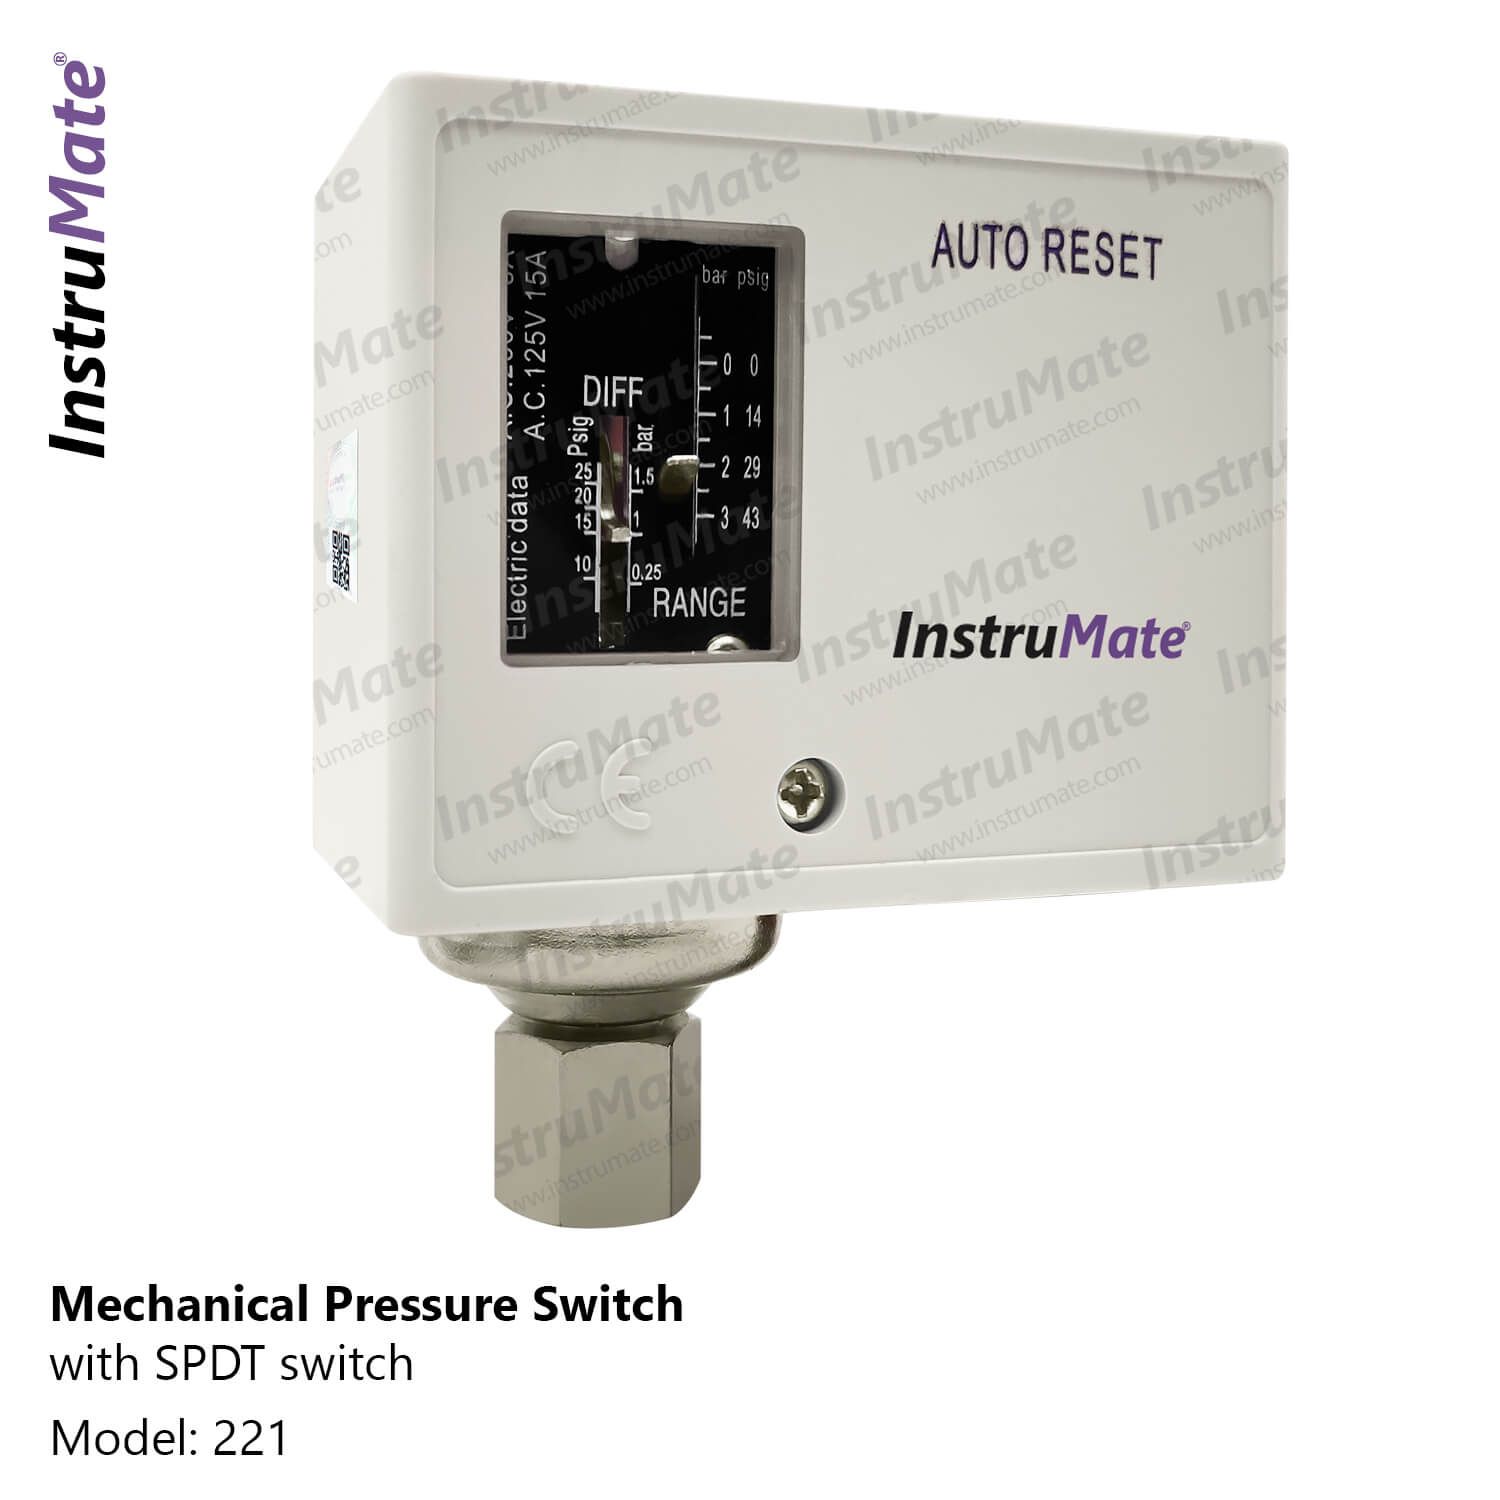 Pressure Switches - 221 - instrumate